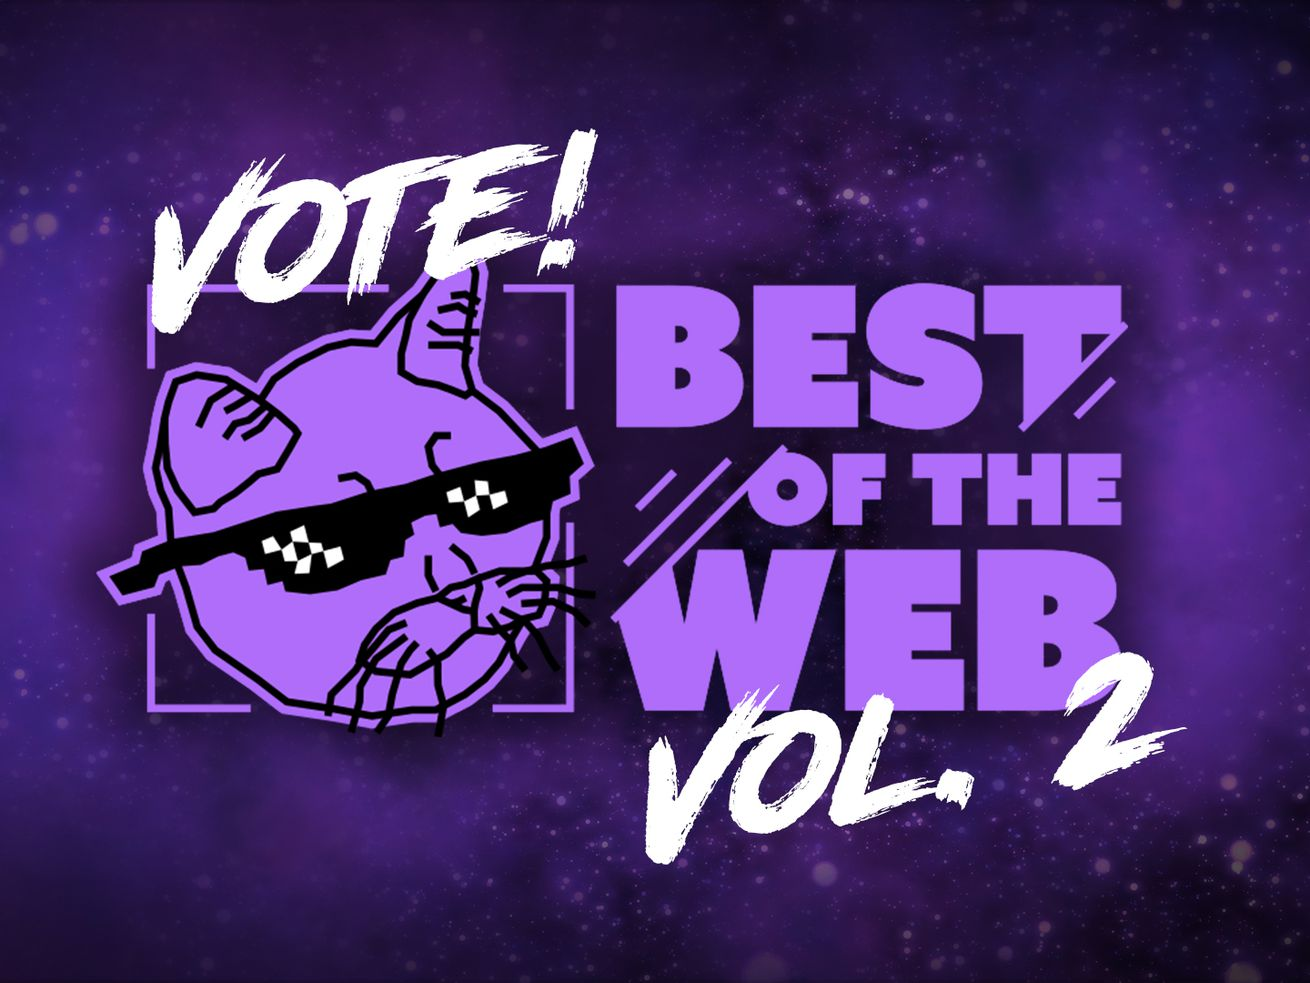 Best Of The Web Nominees Vol. 2